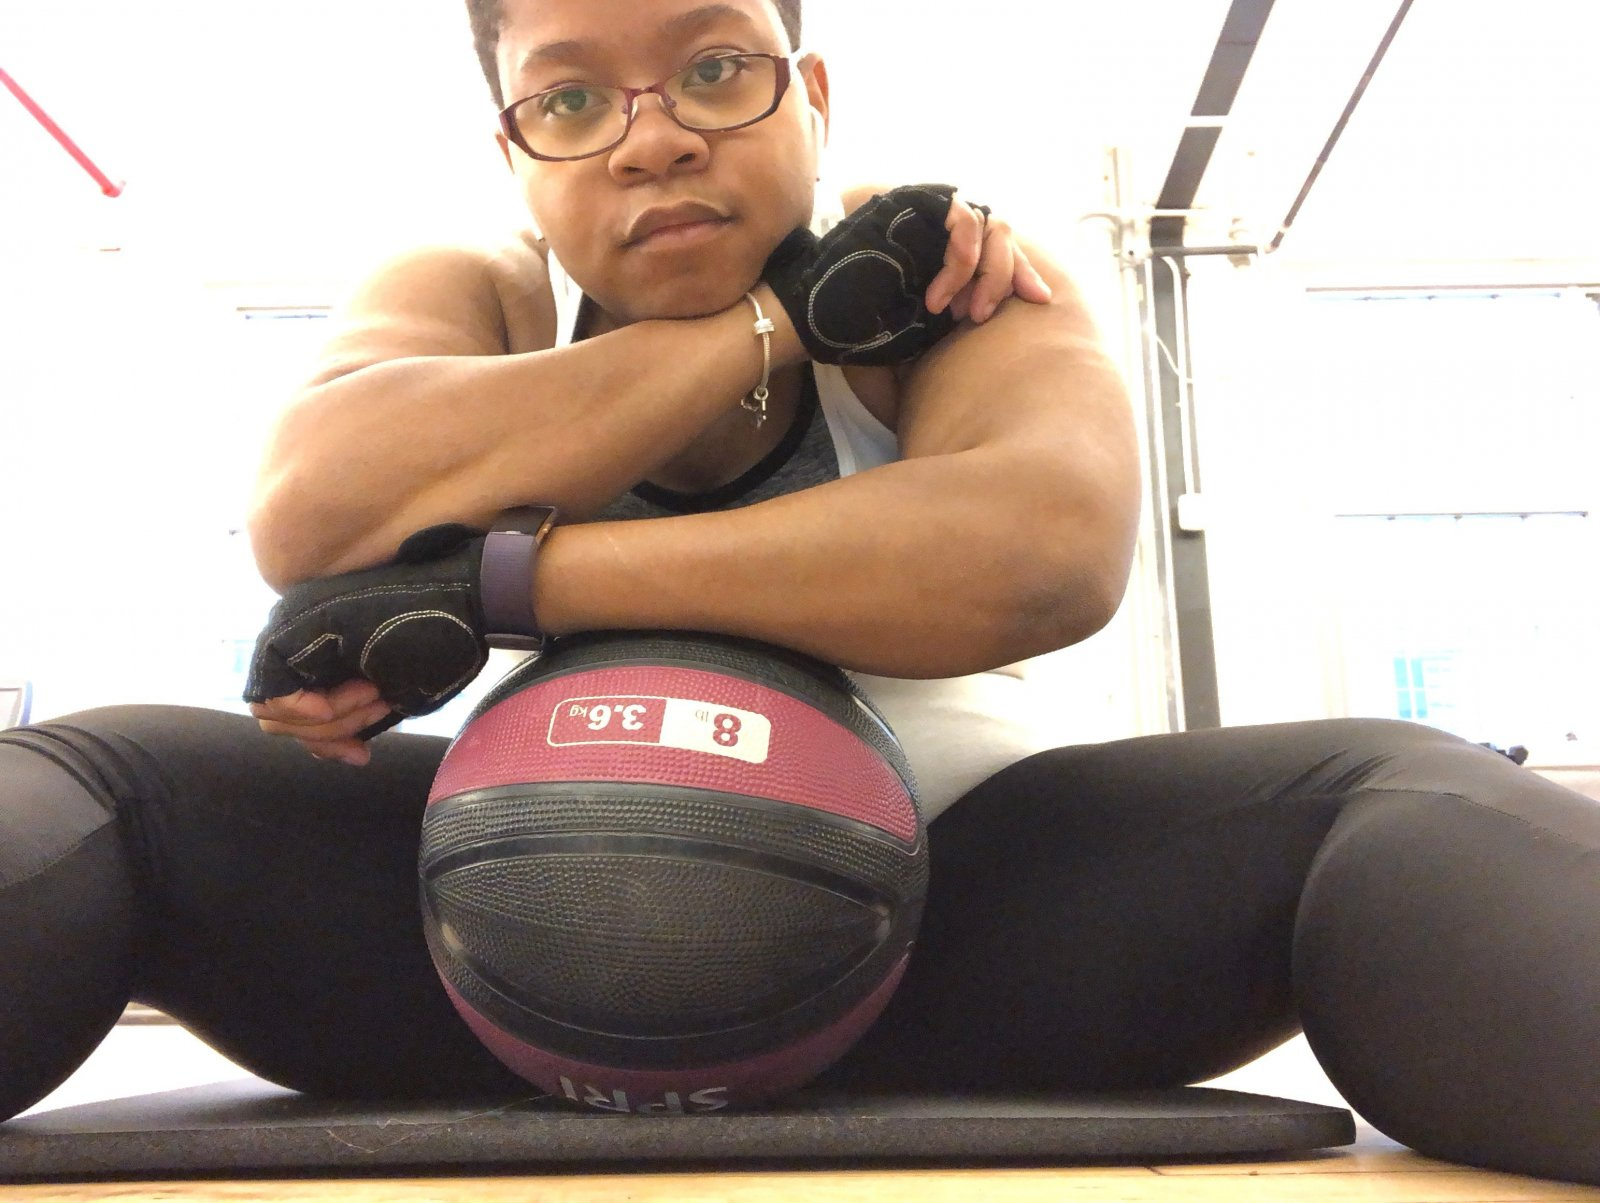 Another Awesome Workout